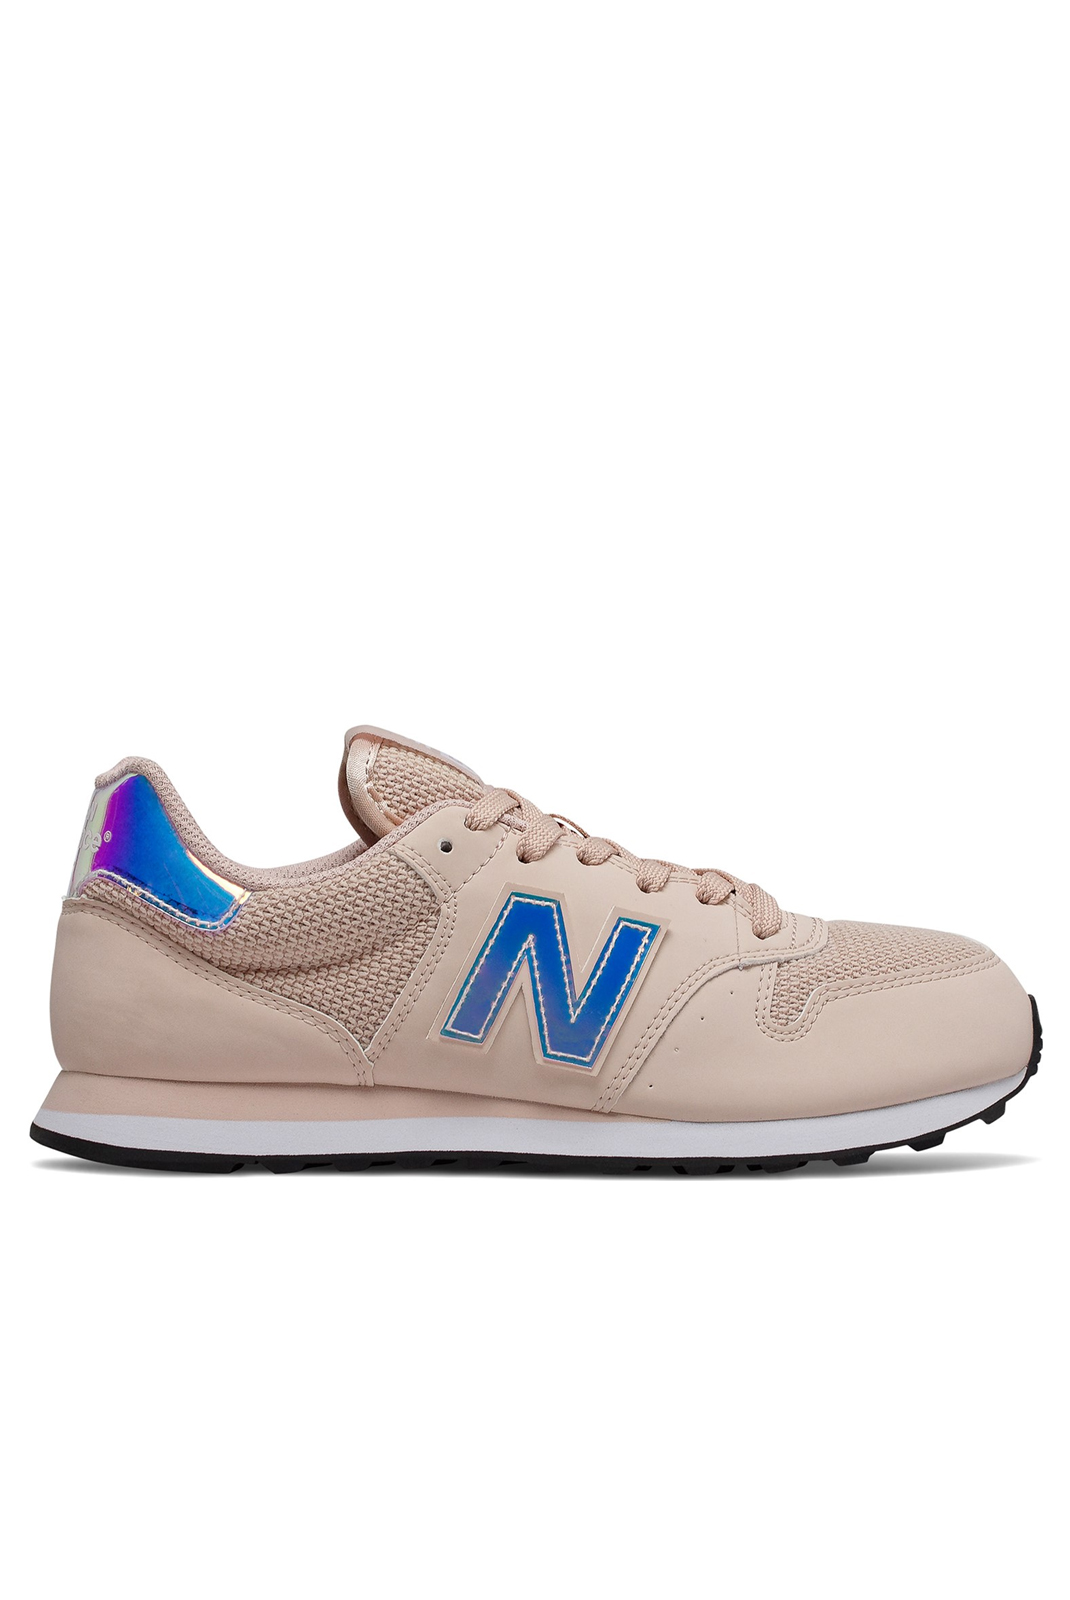 Baskets / Sneakers  New balance GW500HGY HGY